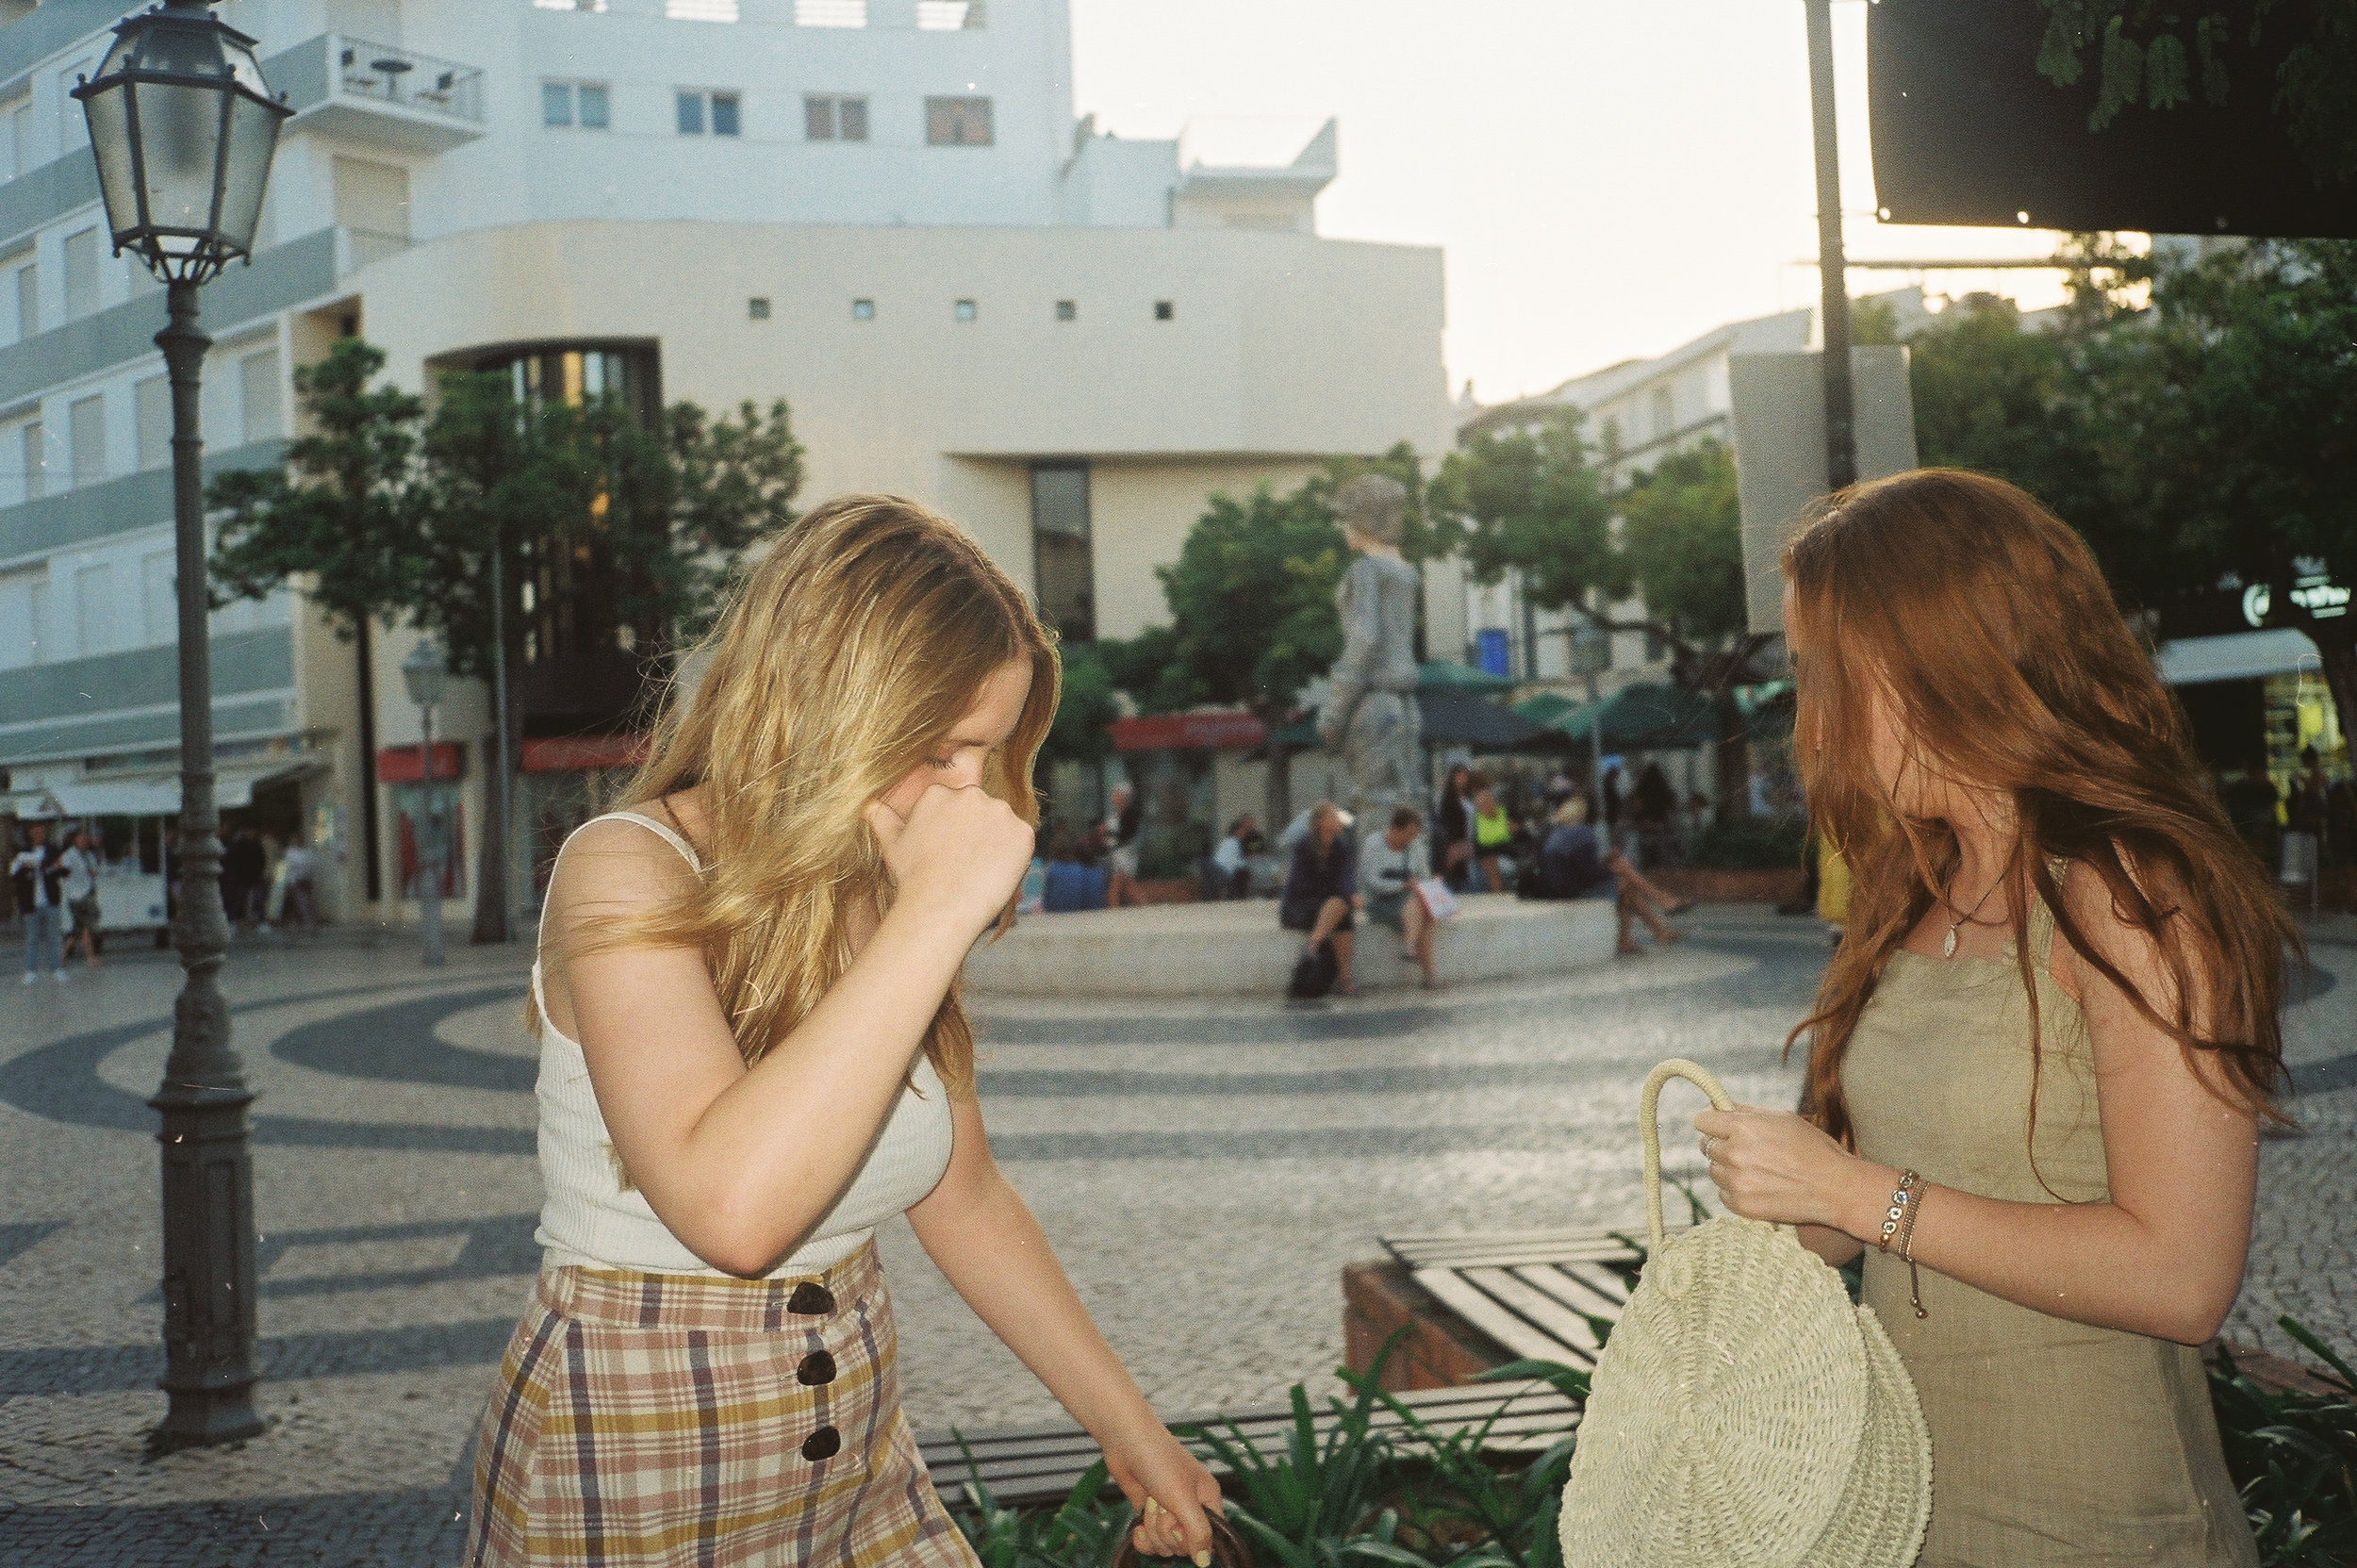 a-girls-trip-to-portugal-on-35mm-film28.jpg